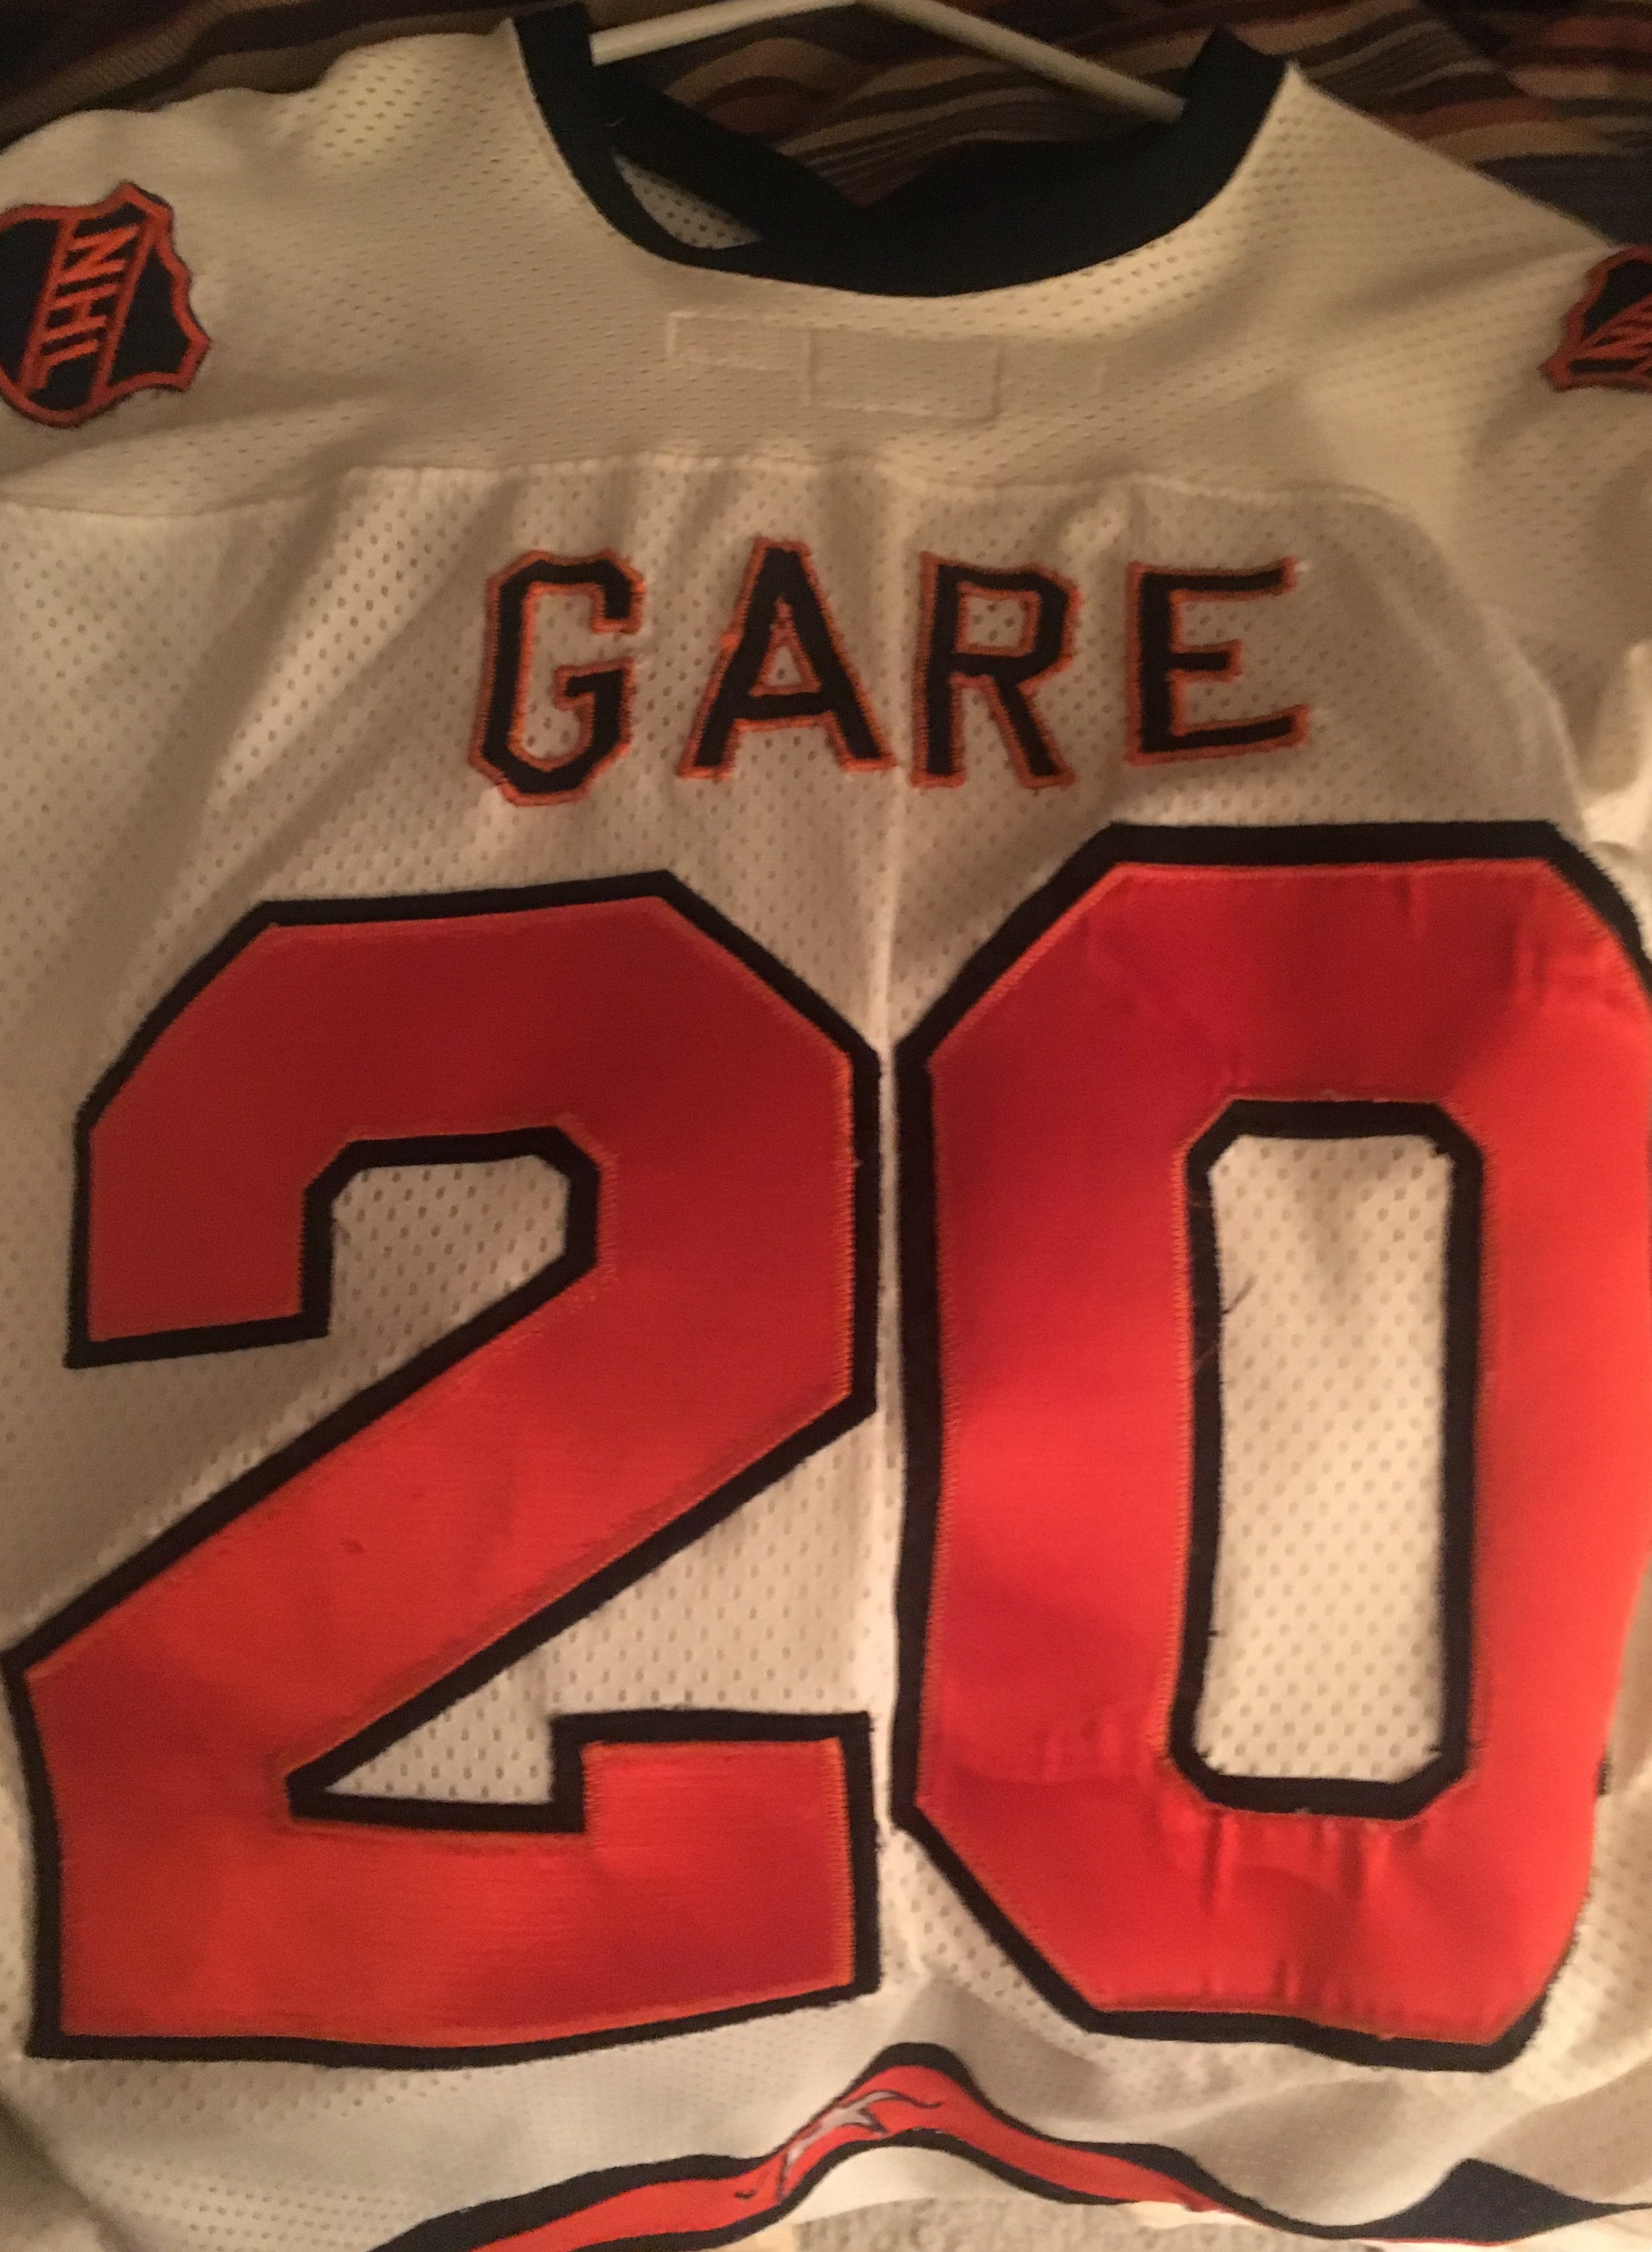 Danny Gare's All Star jersey 1981 NHL All Star Game.